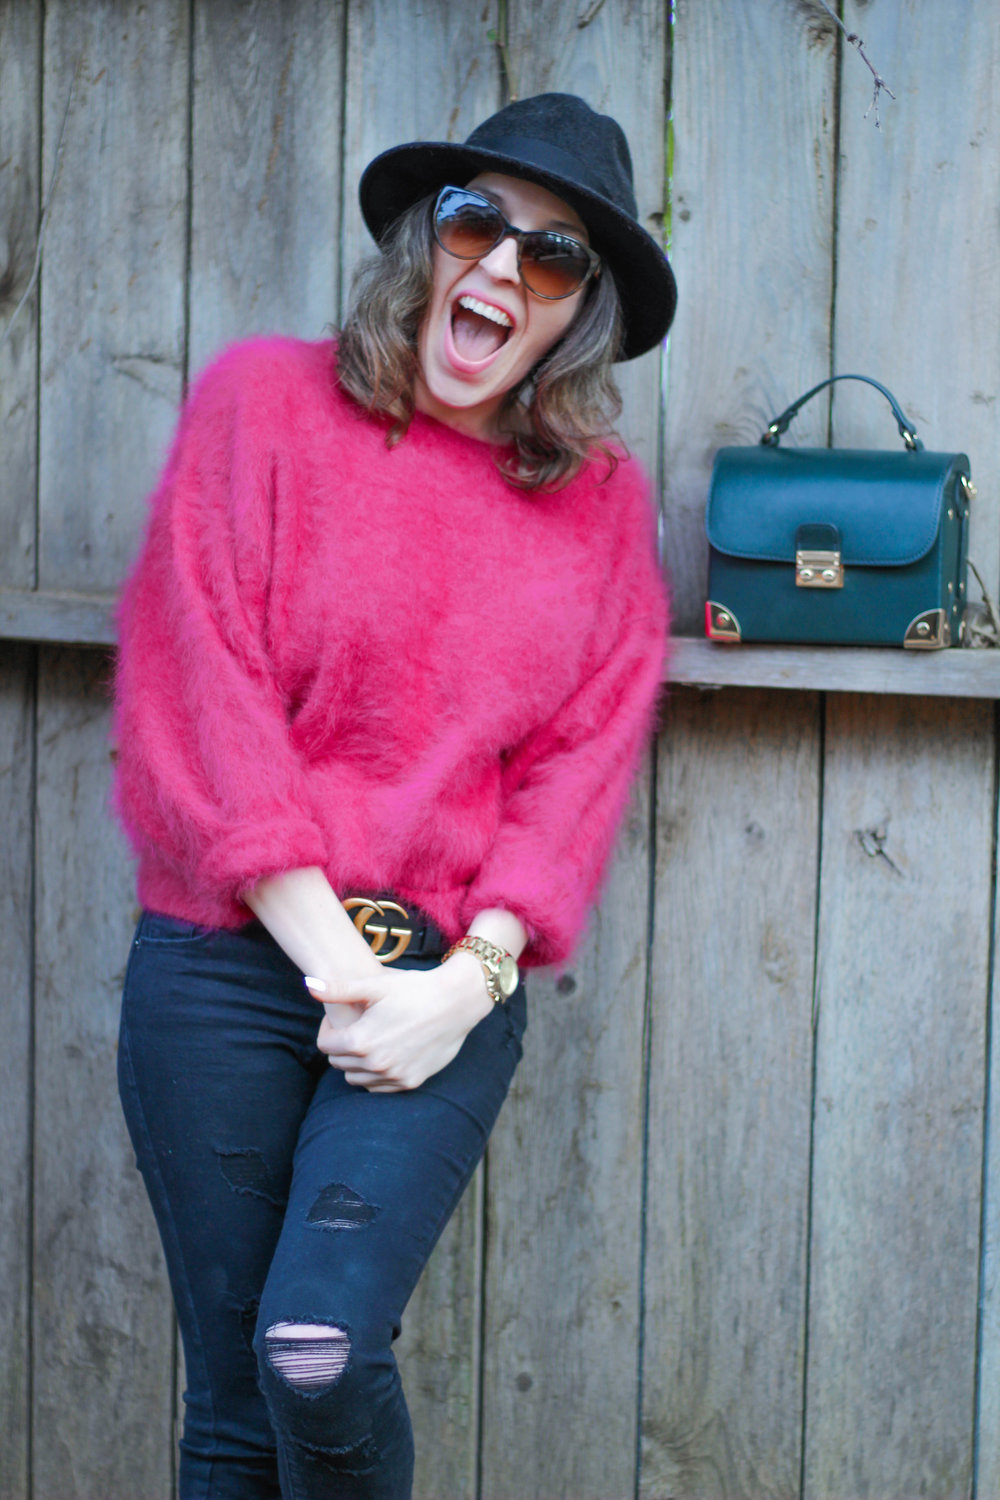 Sweater: vintage, similar   here   // Jeans:   Old Navy   // Shoes:   Bamboo   // Belt:   Gucci   // Hat:   Goorin   Bros // Sunnies:   Chanel   // Bag: F21, similar   here